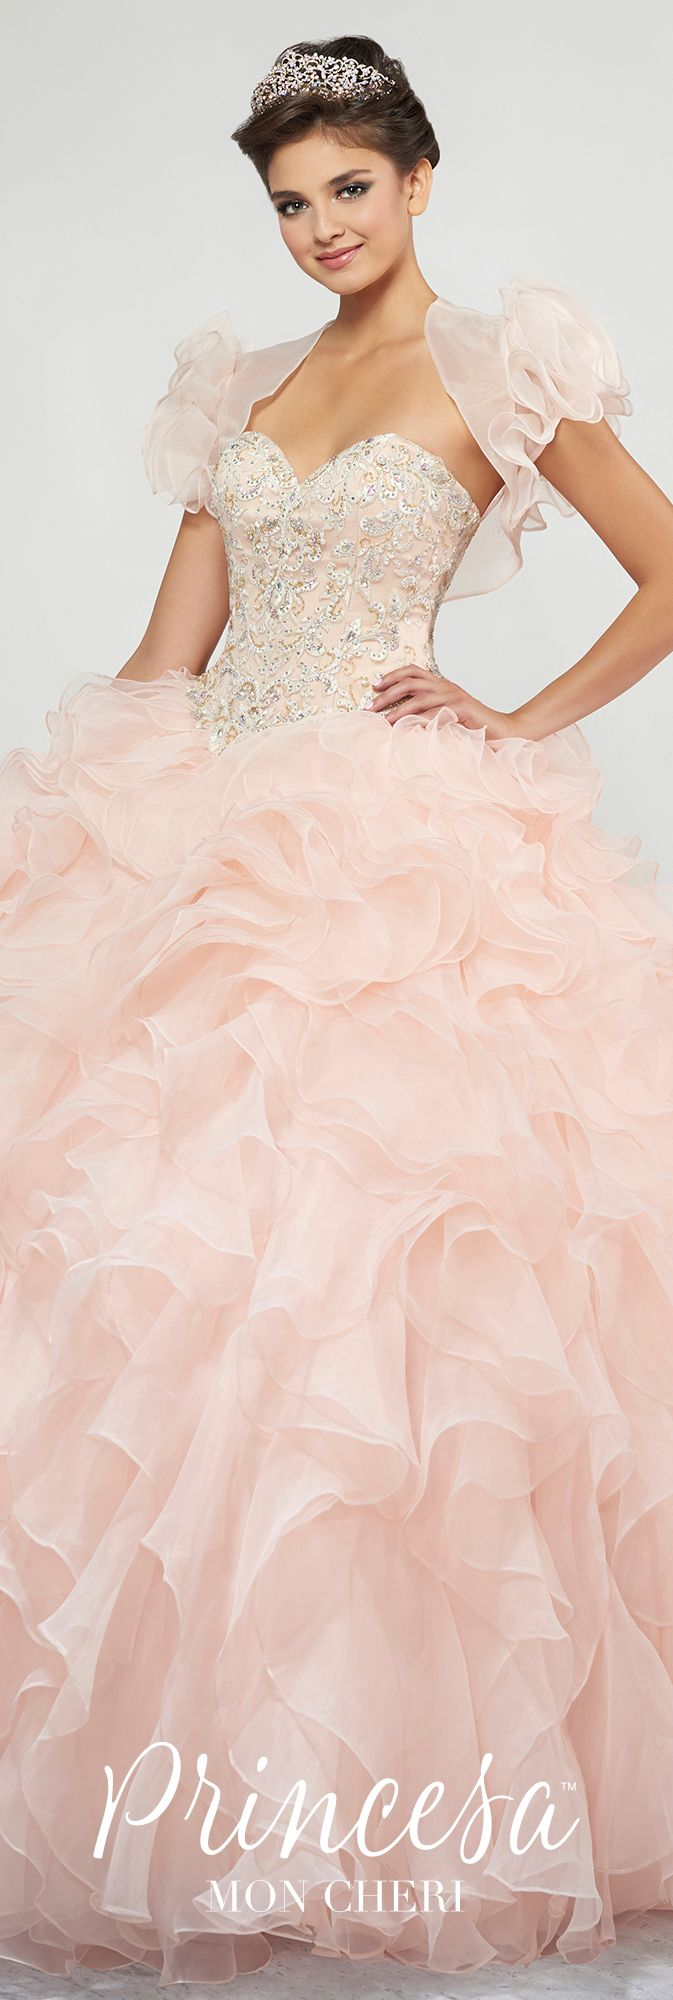 Pink Lace Embroidered Strapless Quinceanera Dress - PR11812 | 15 ...